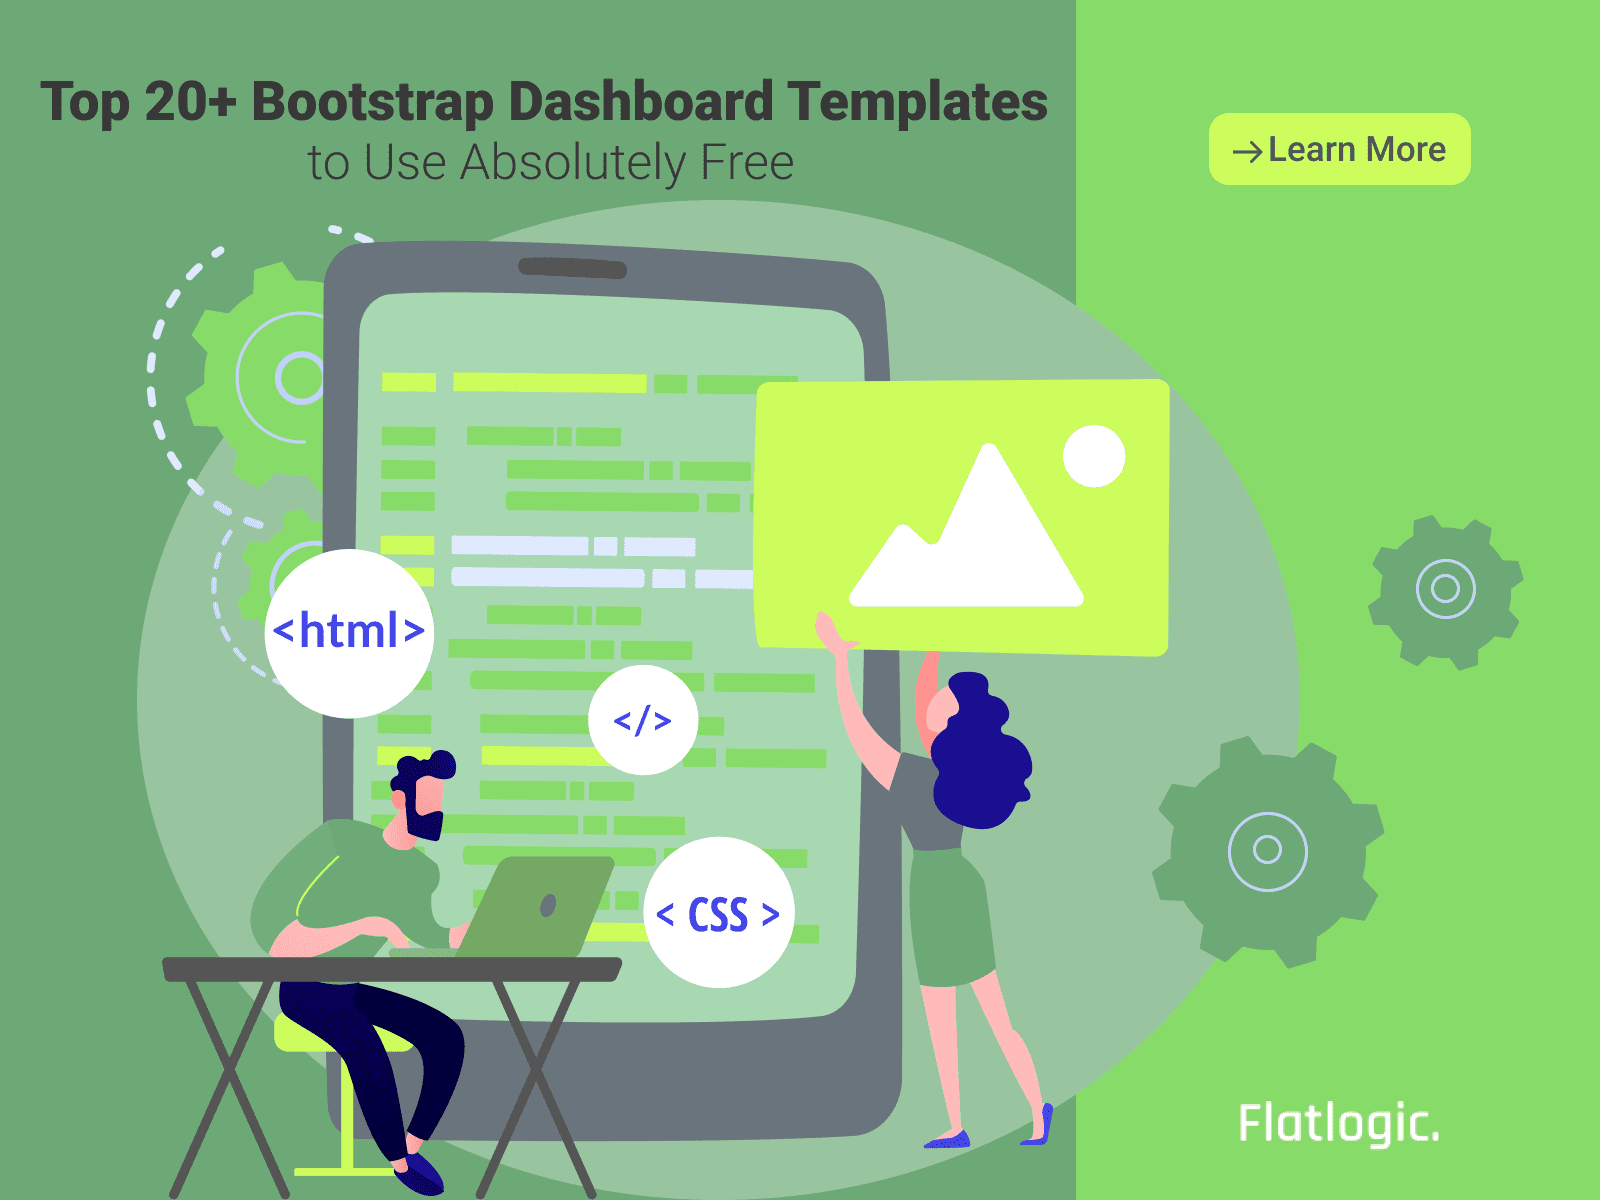 Top 20+ Bootstrap Dashboard Templates to Use Absolutely Free